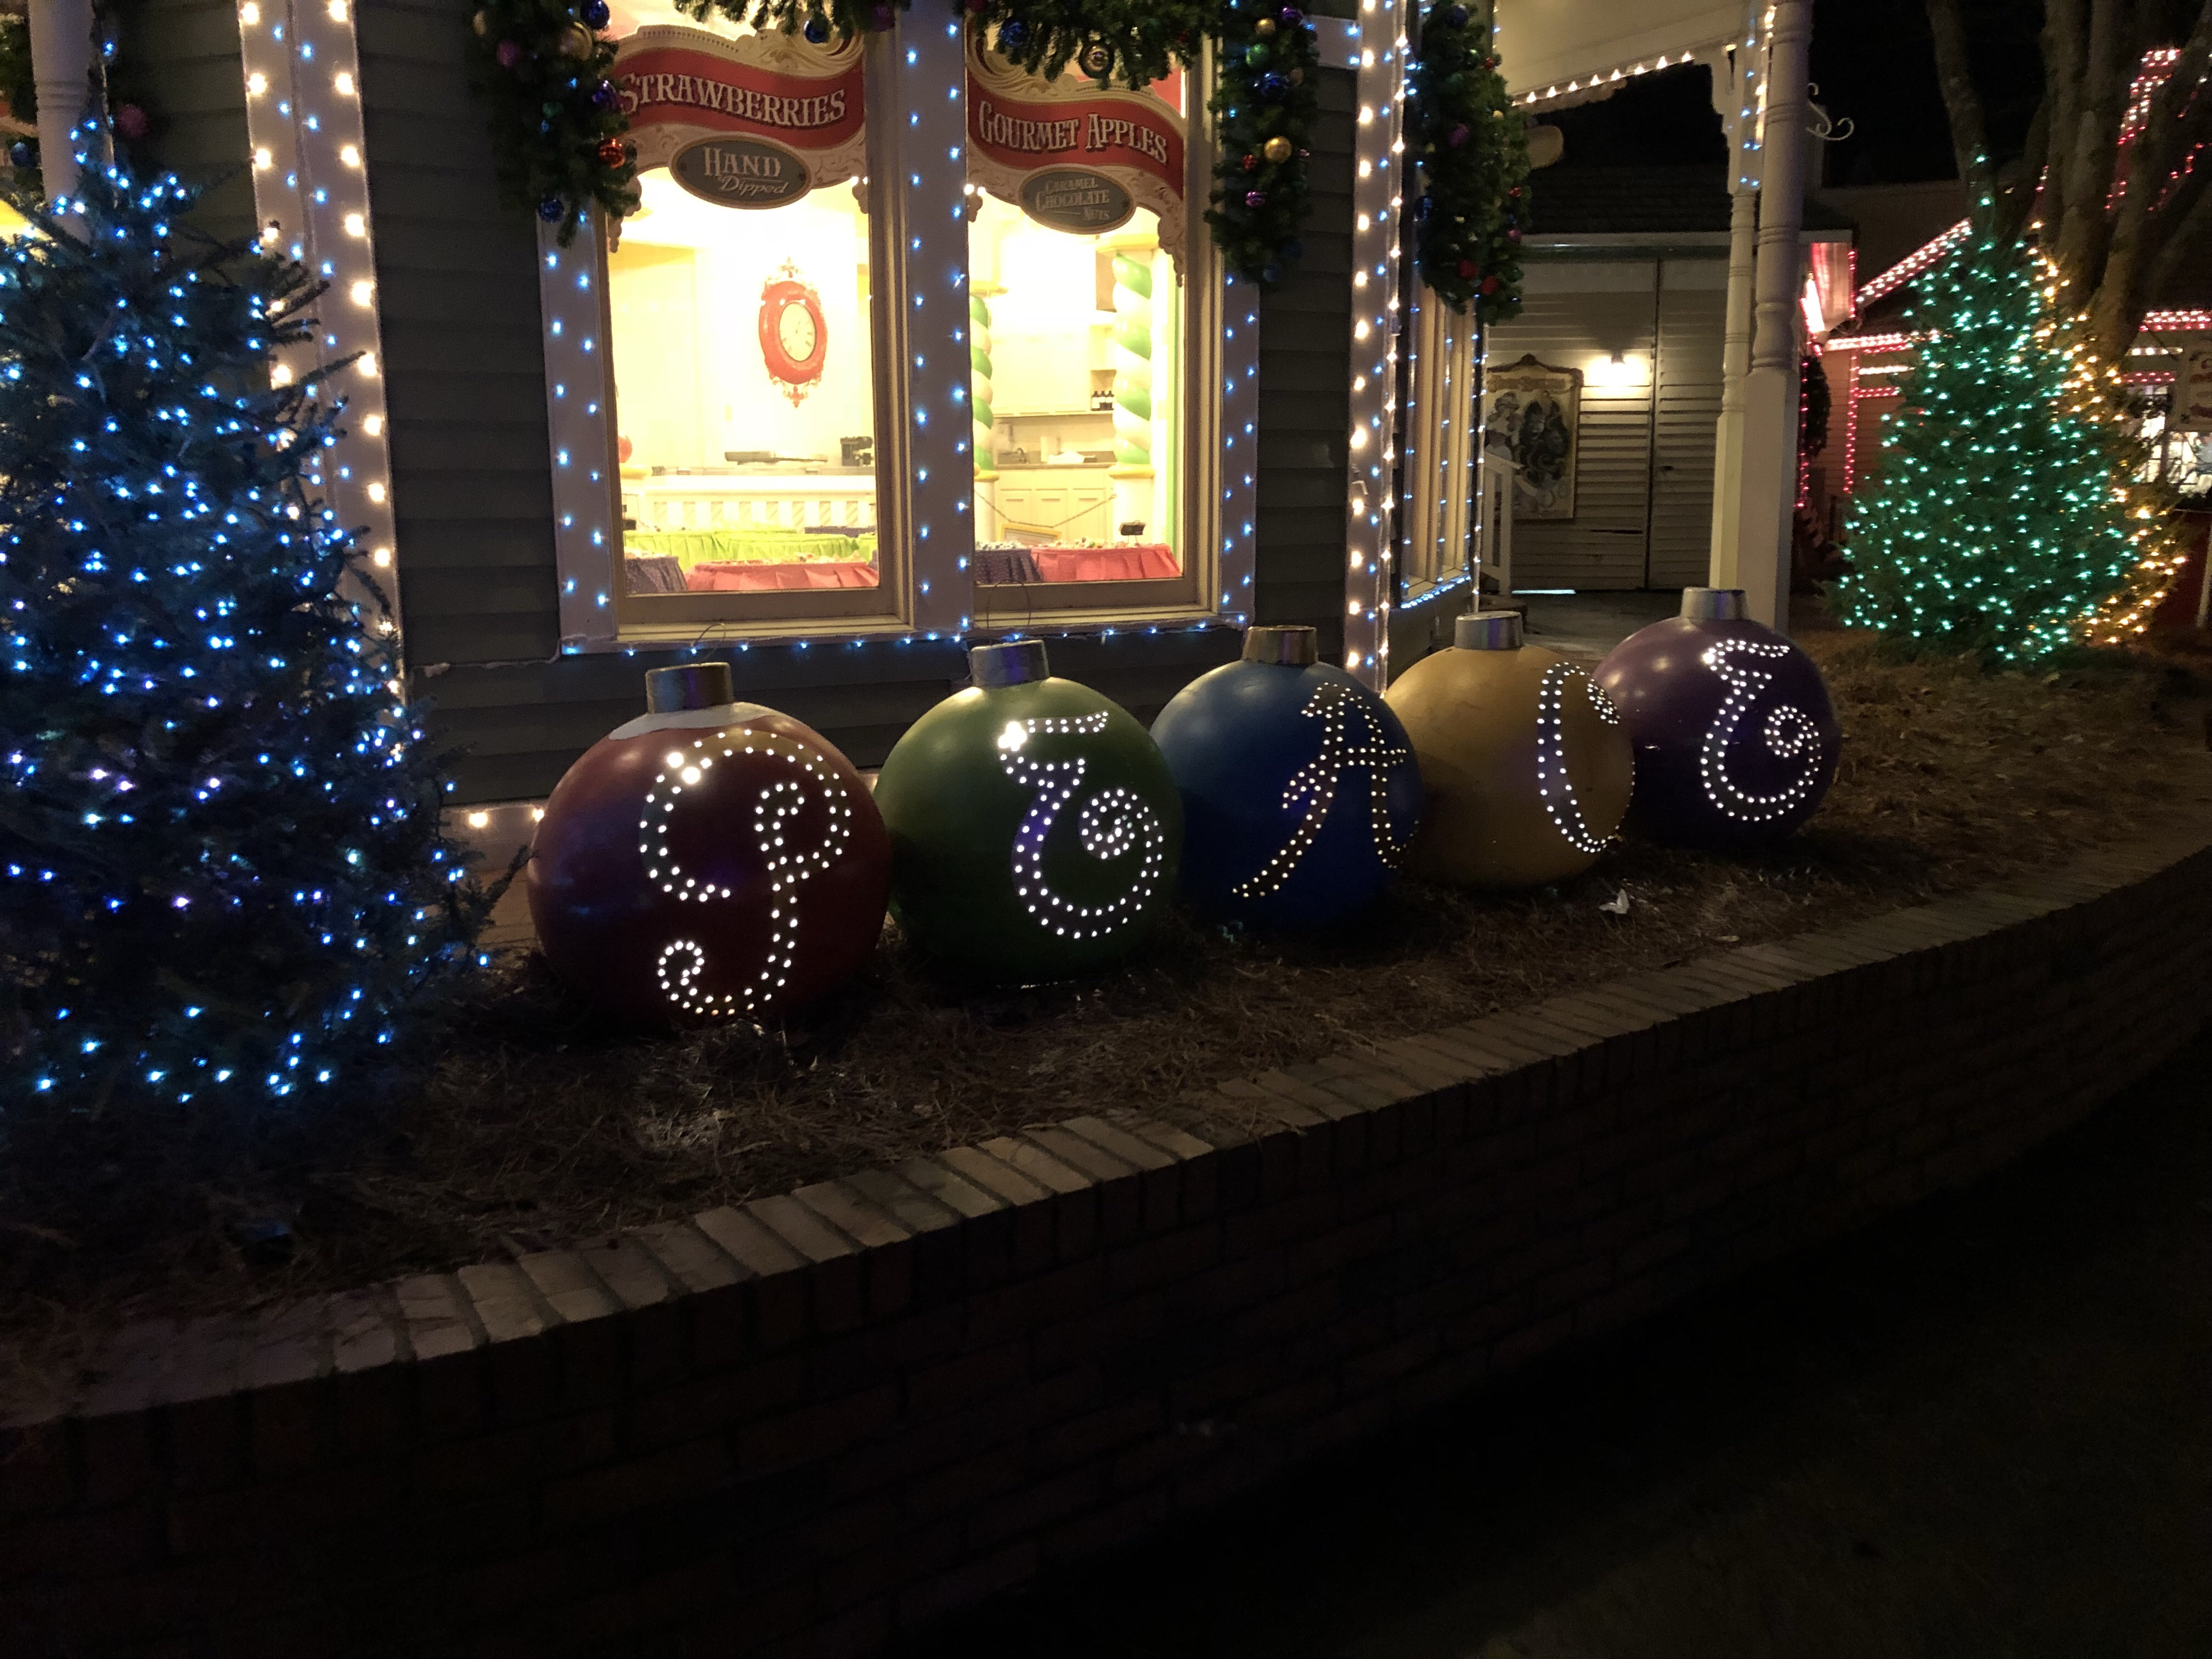 without question dollywood christmas is going to be a new holiday tradition for my family they really do an amazing job with decorations